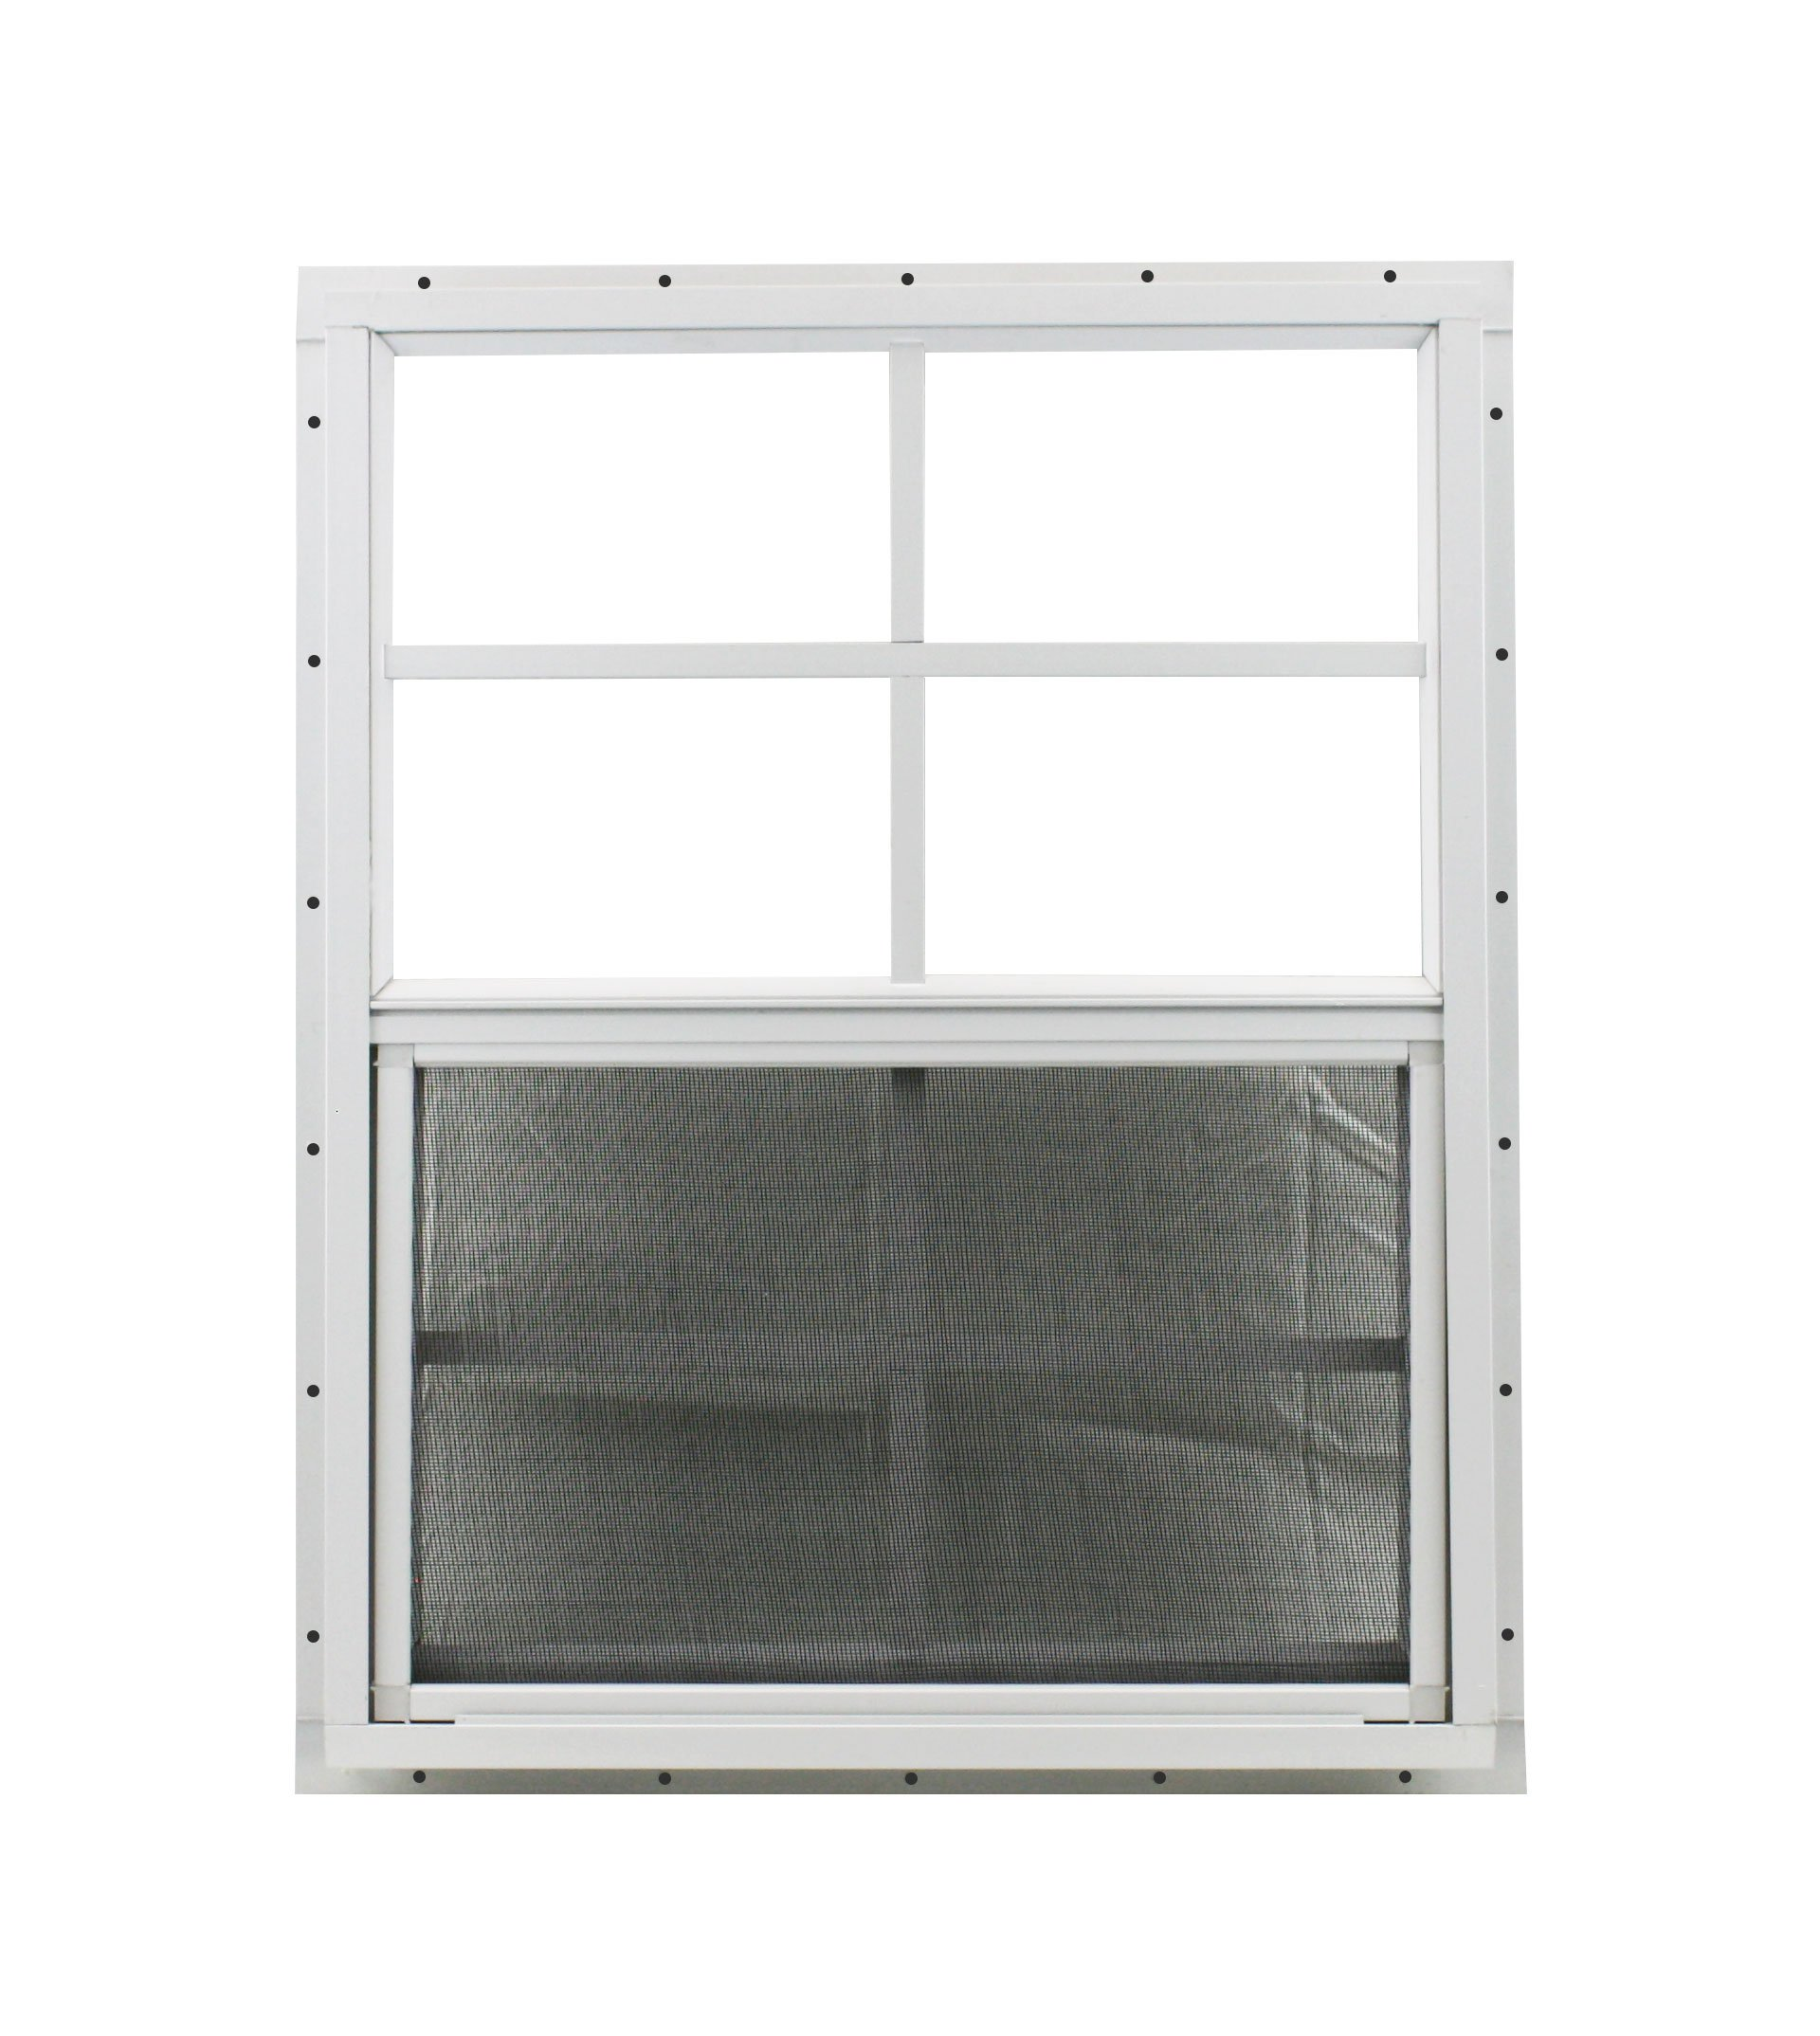 Shed Window 18'' X 27'' White J-channel Mount SAFETY/TEMPERED GLASS, Playhouses, Treehouses